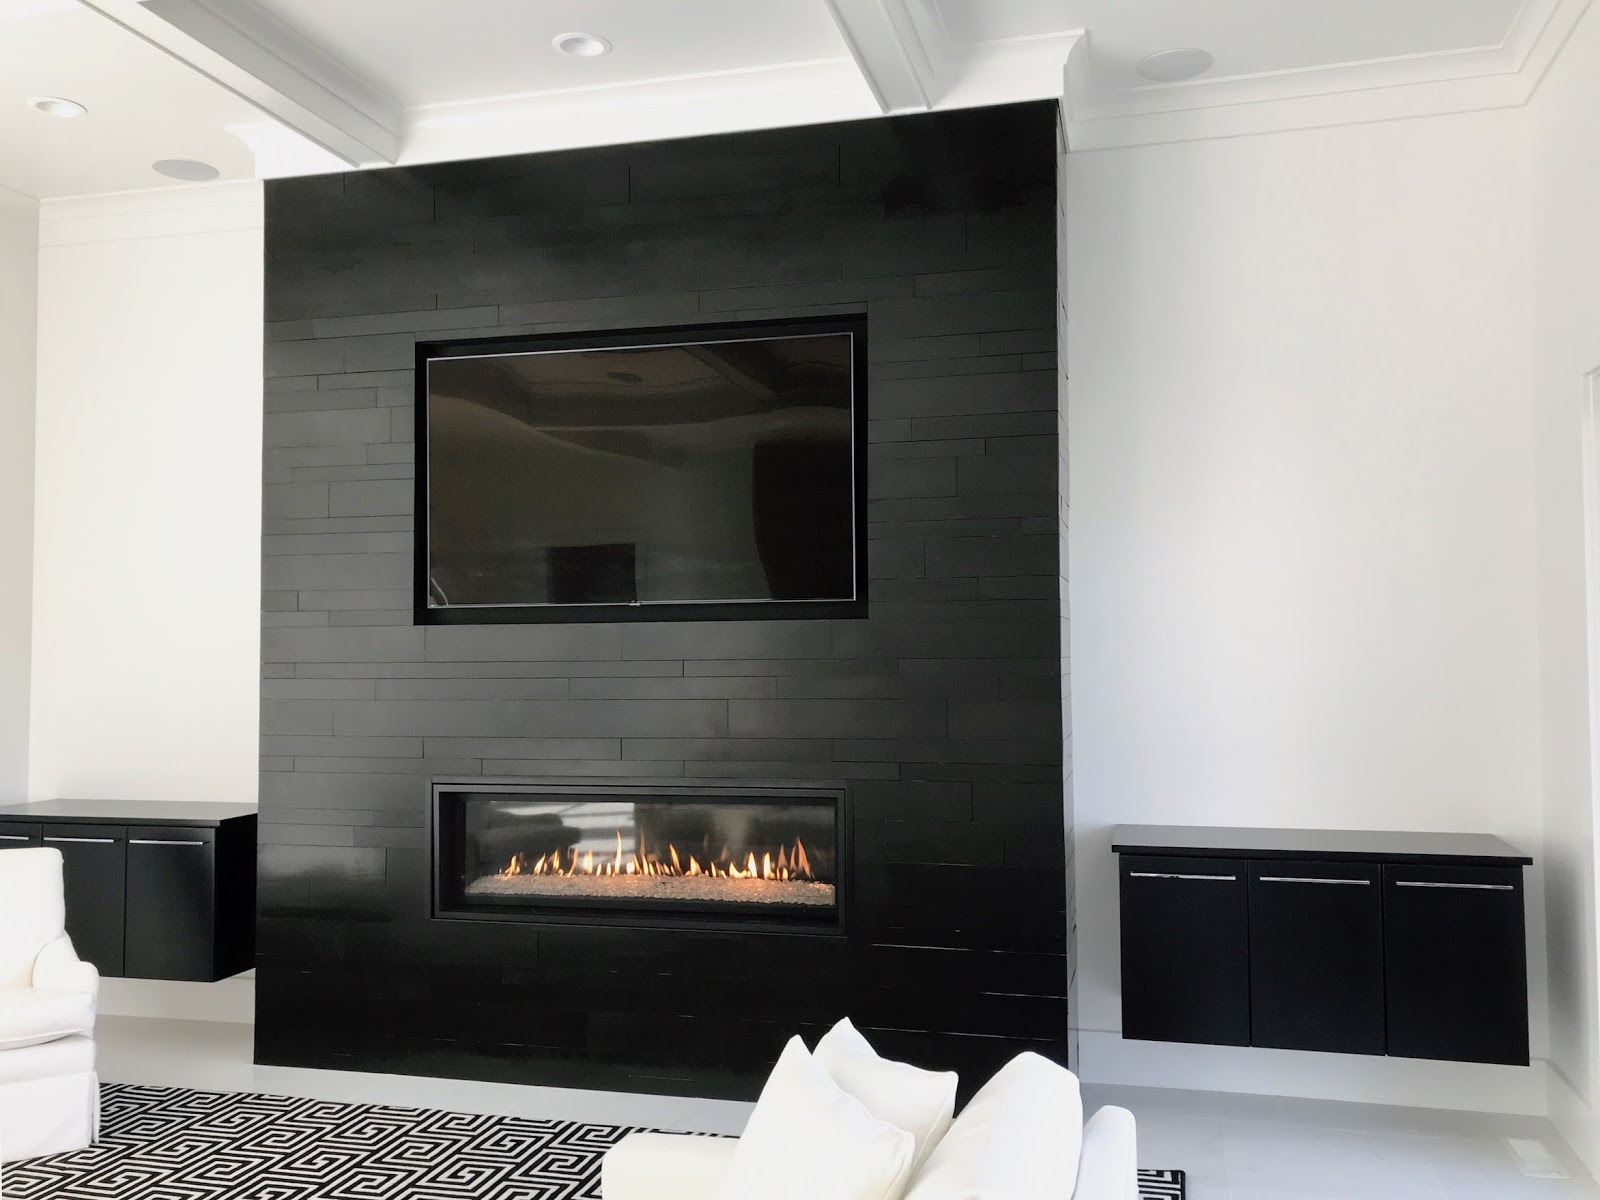 A modern fireplace remodel with granite tile, and a low-rise, electric fireplace